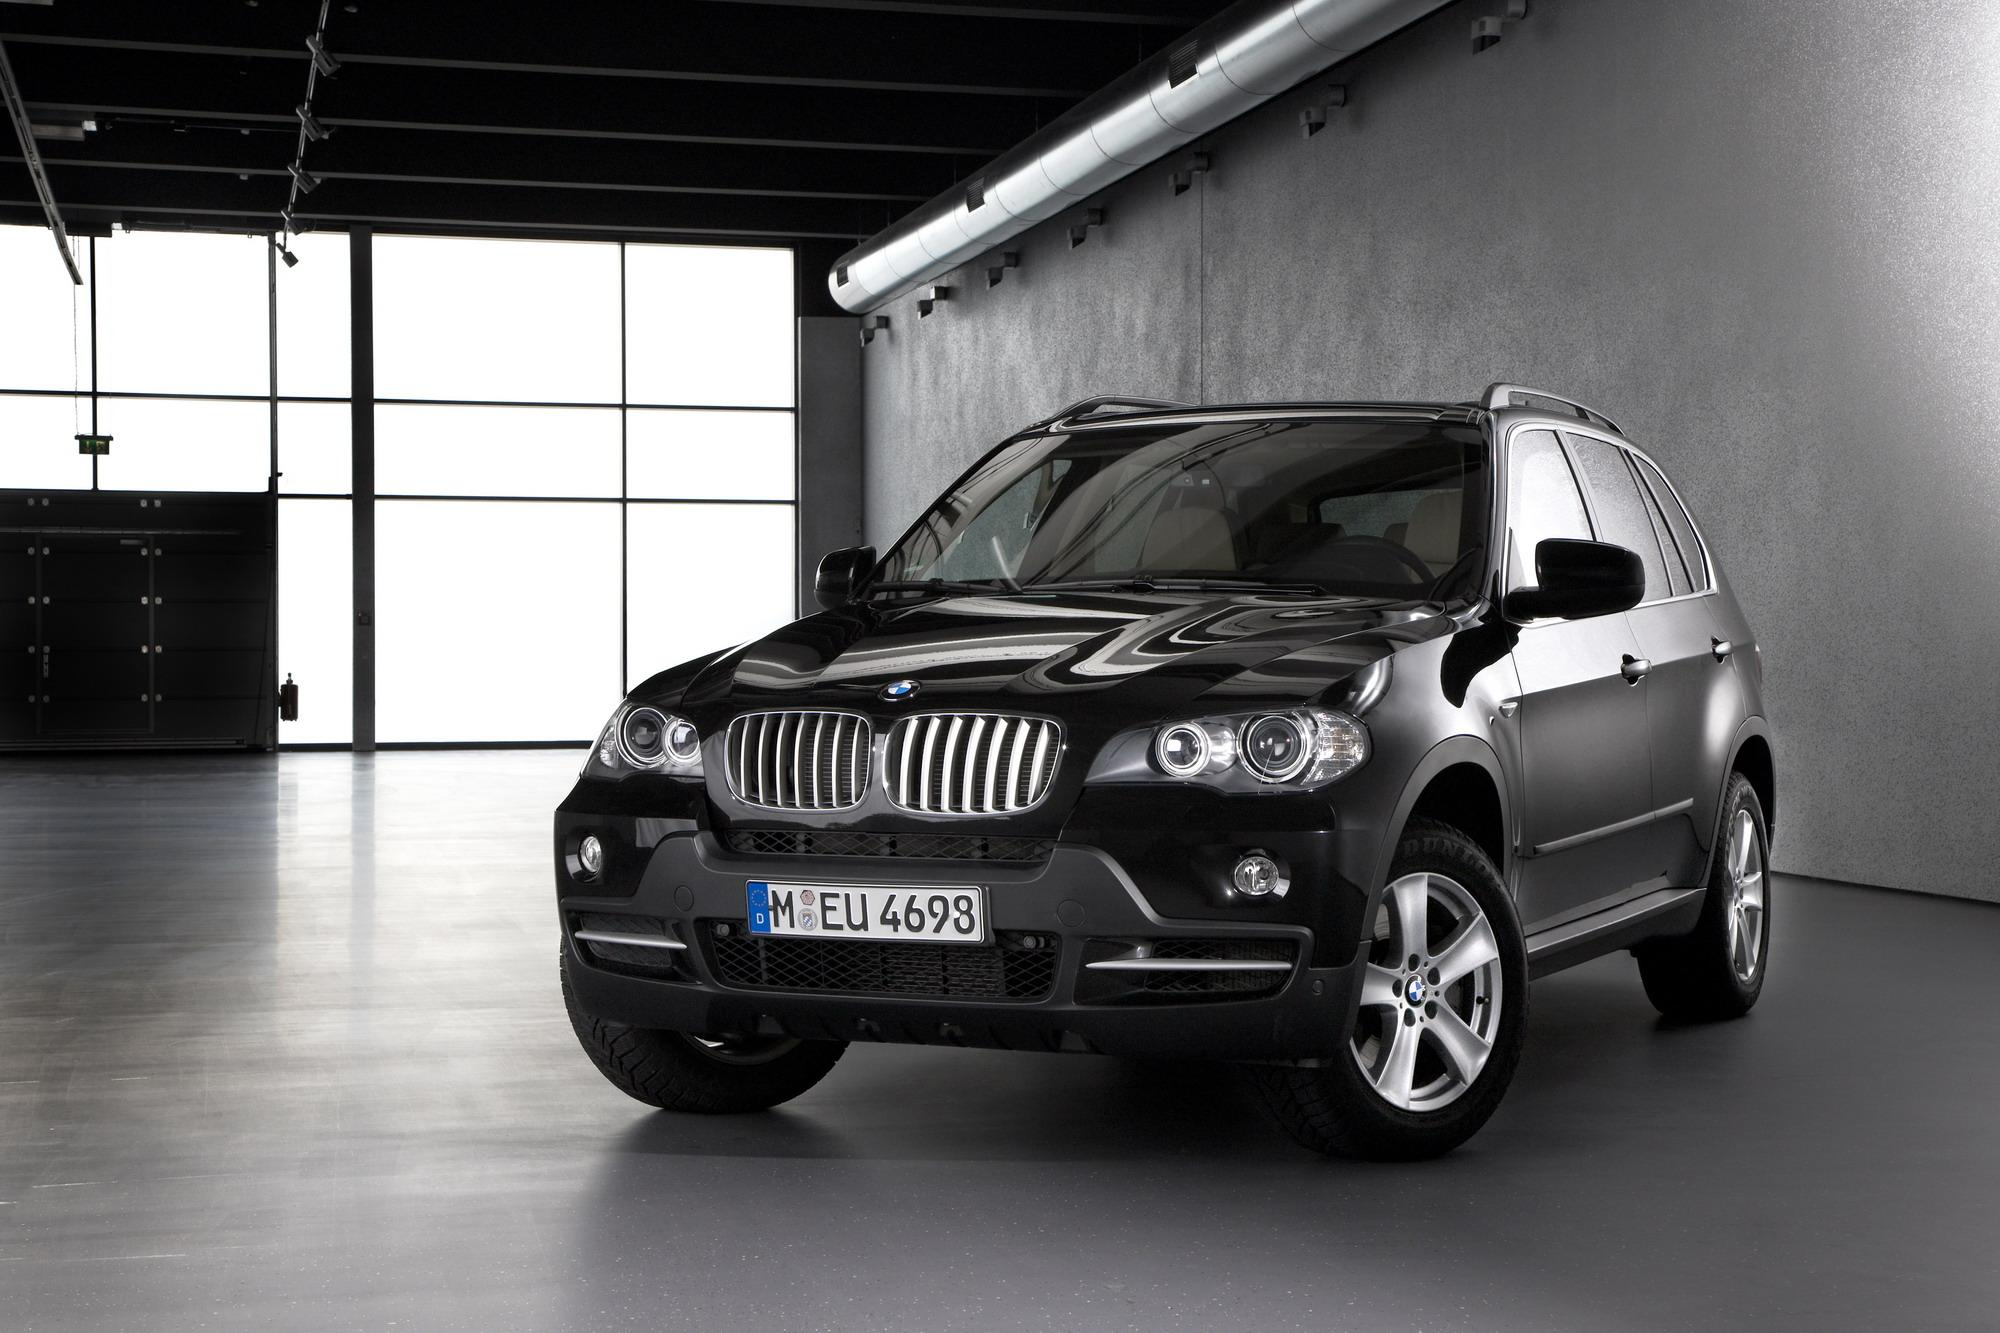 2009 BMW X5 Security Plus | Top Speed